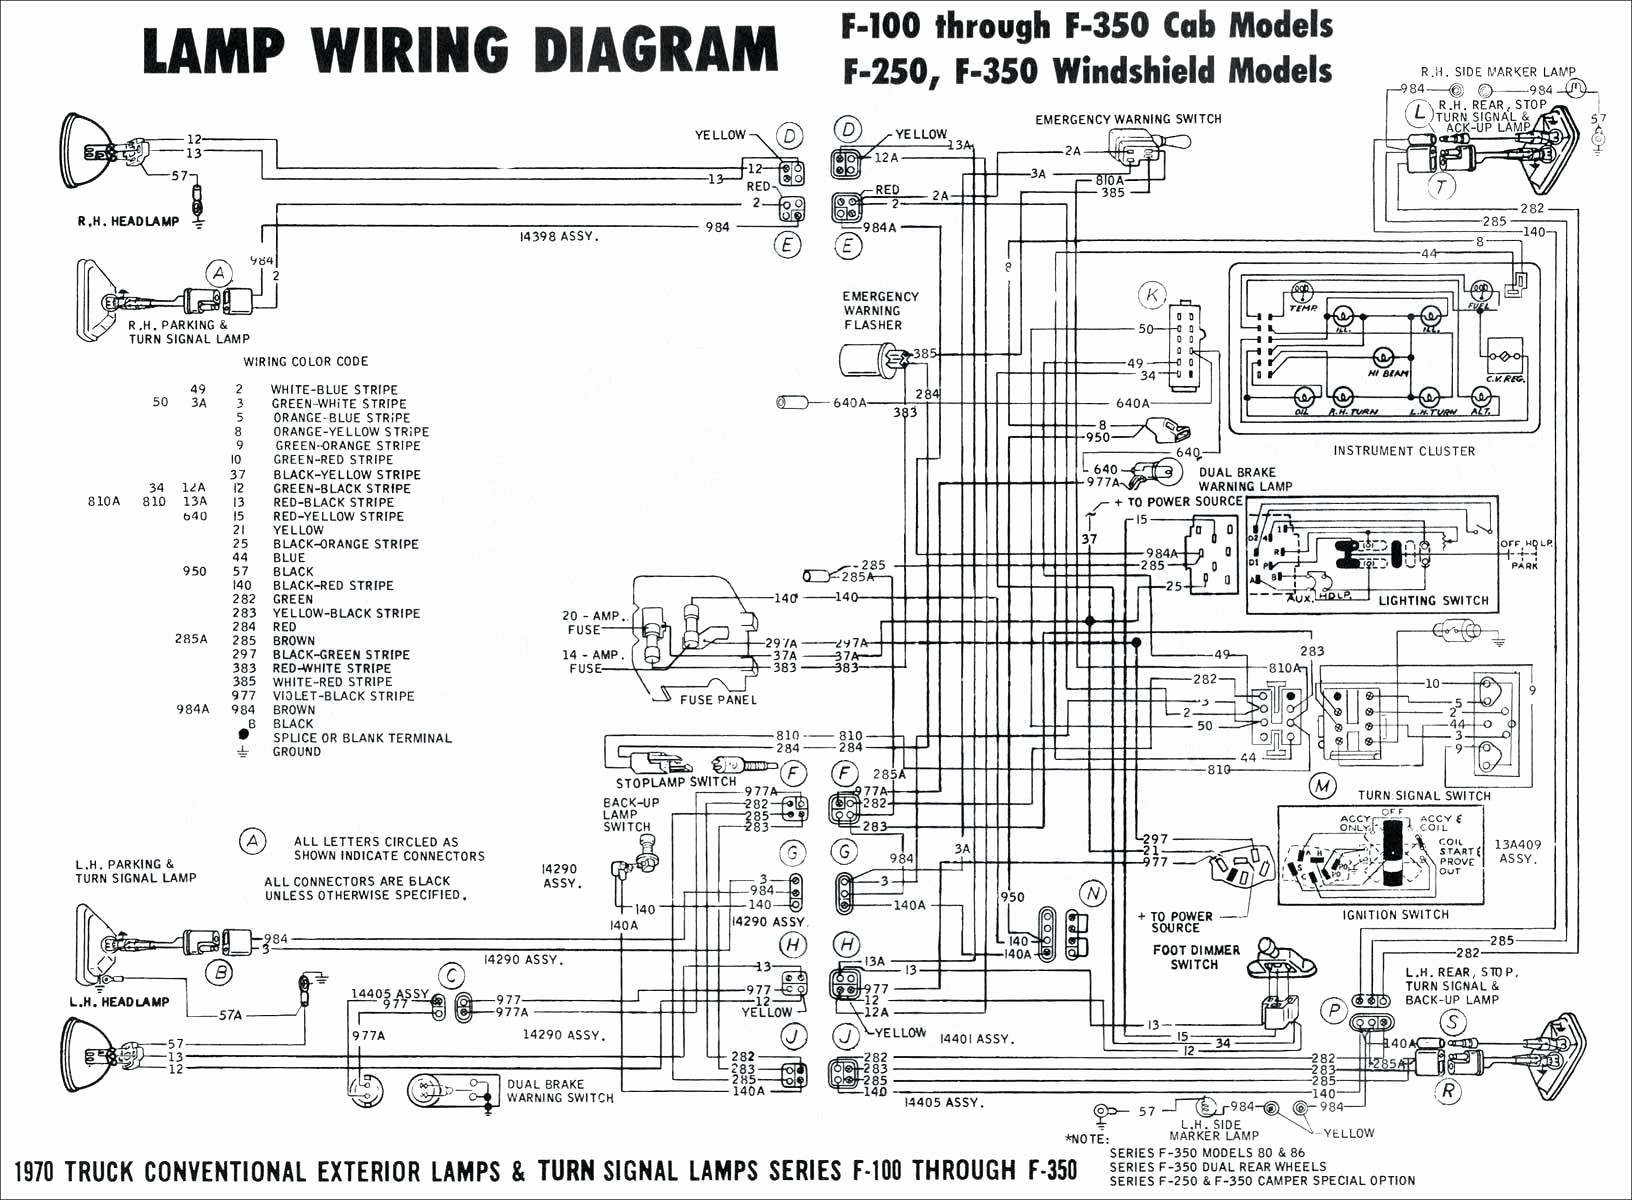 [DIAGRAM] 2000 Ford F650 Fuse Diagram FULL Version HD